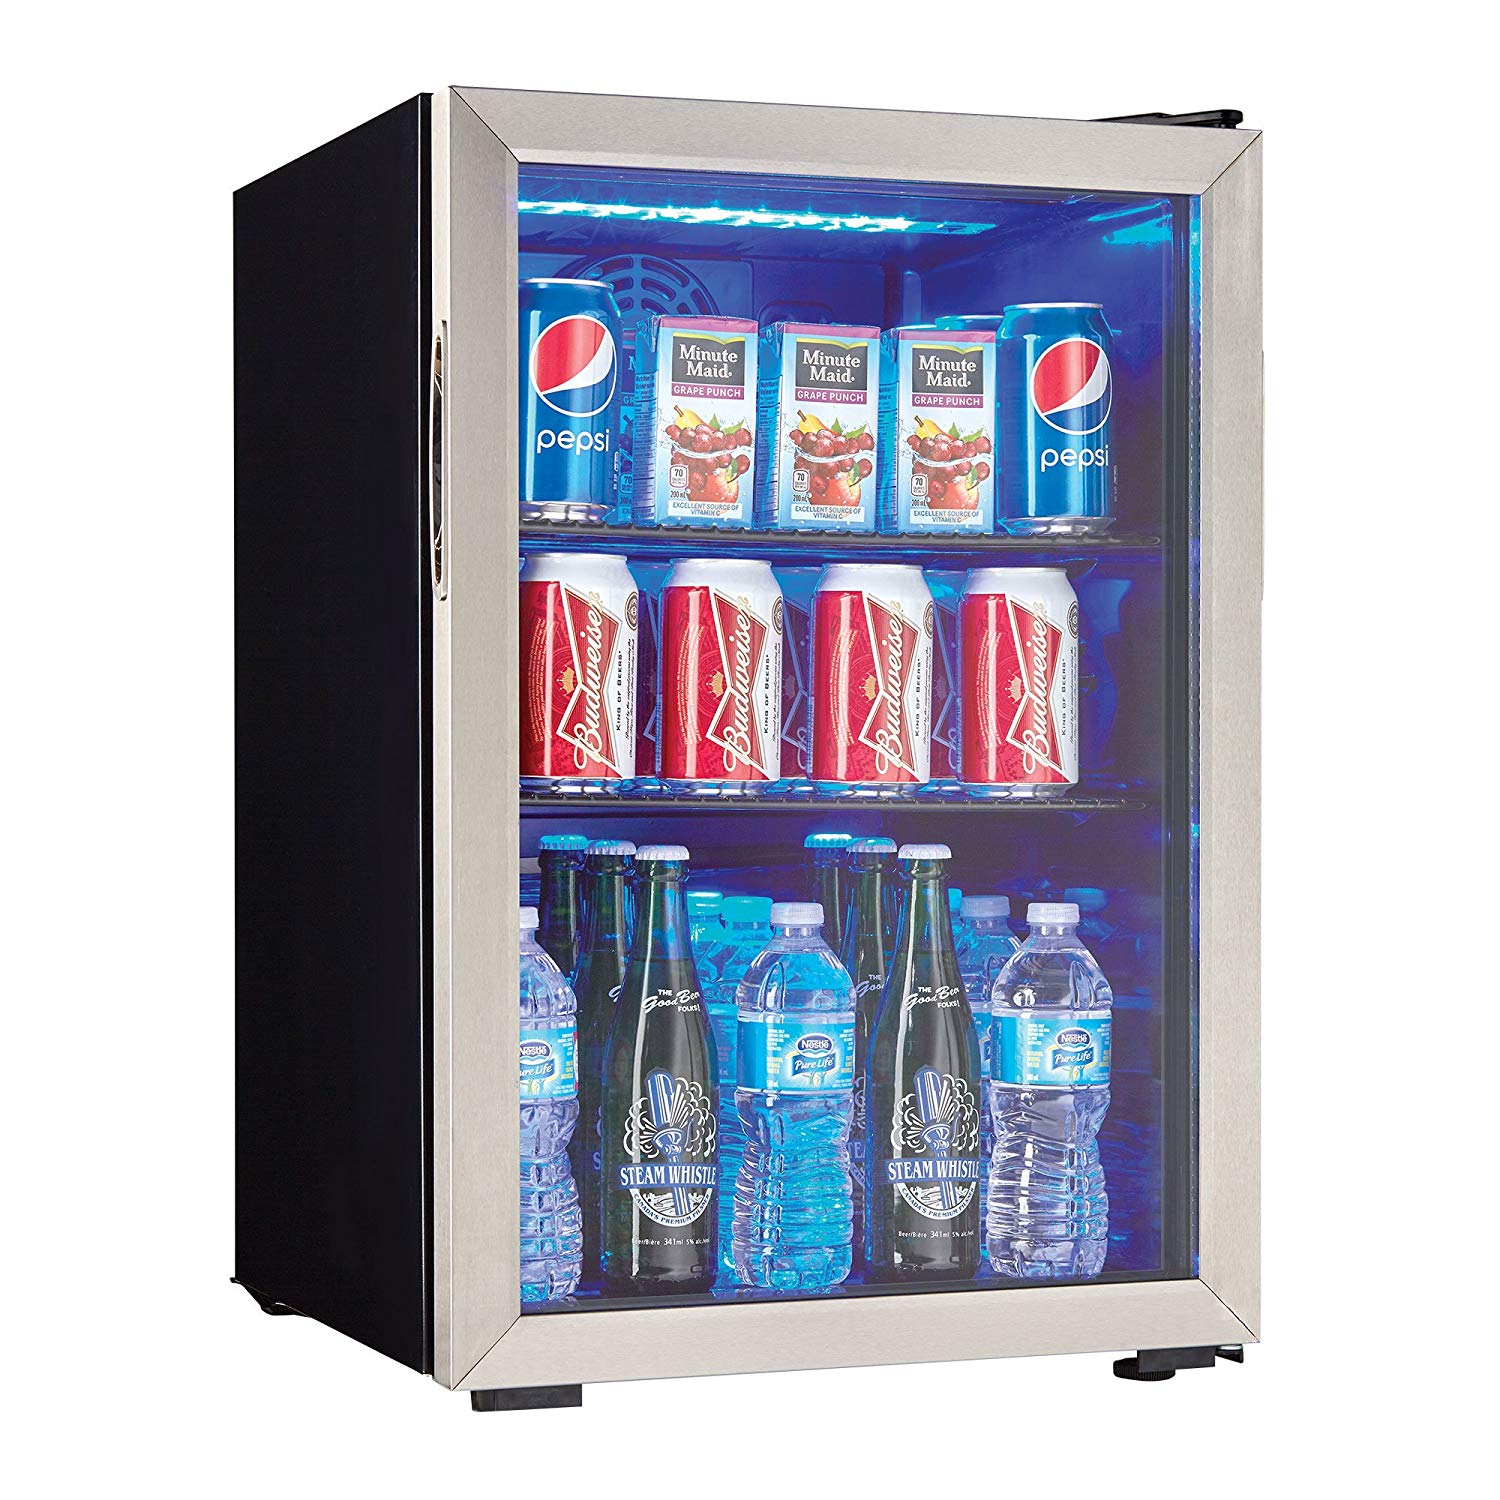 7 Best Refrigerator for beverages and beer bottles